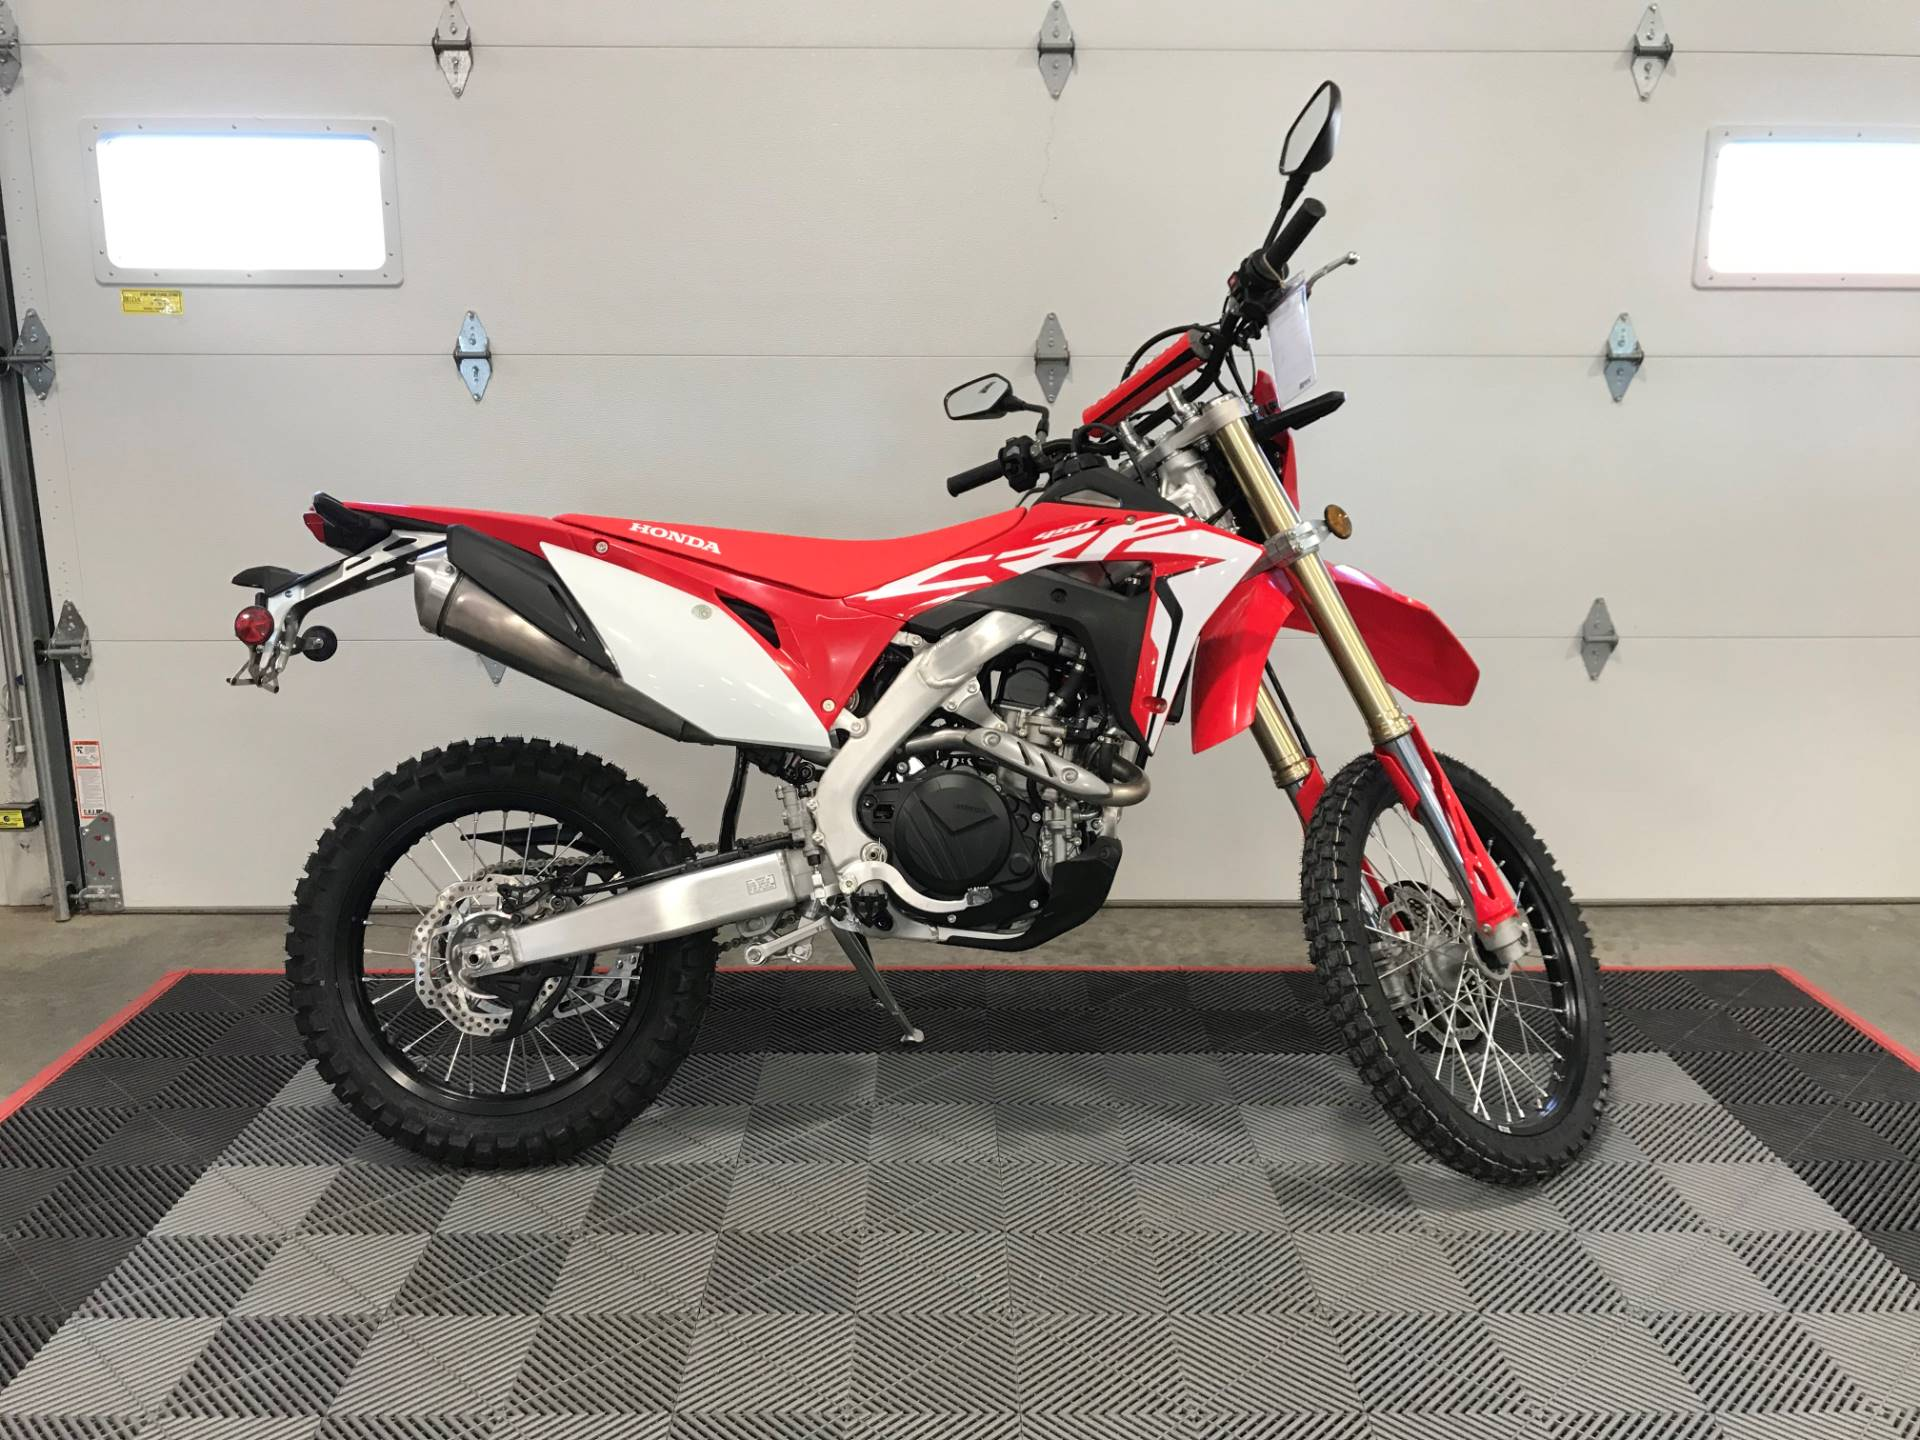 New 2019 Honda Crf450l Motorcycles In Ames Ia Stock Number 001415